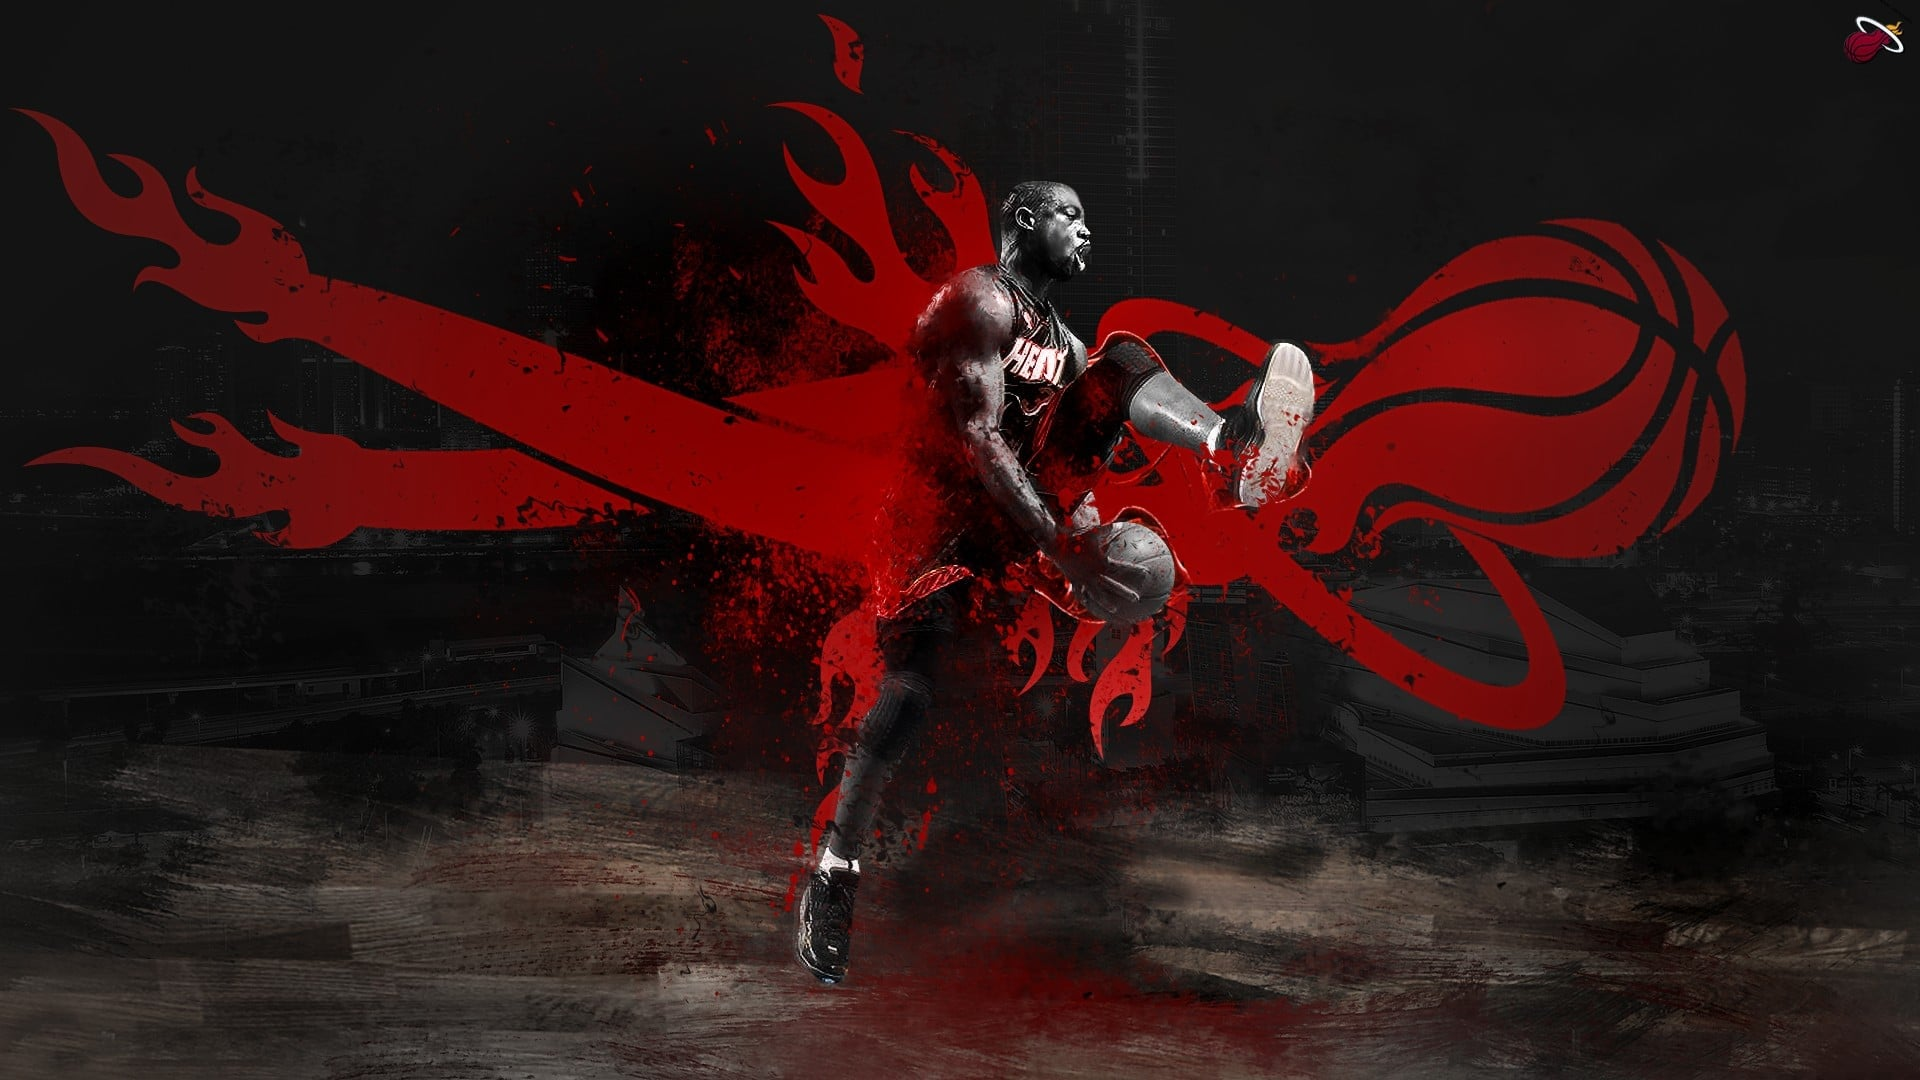 23 Dwyane Wade wallpapers HD Download 1920x1080